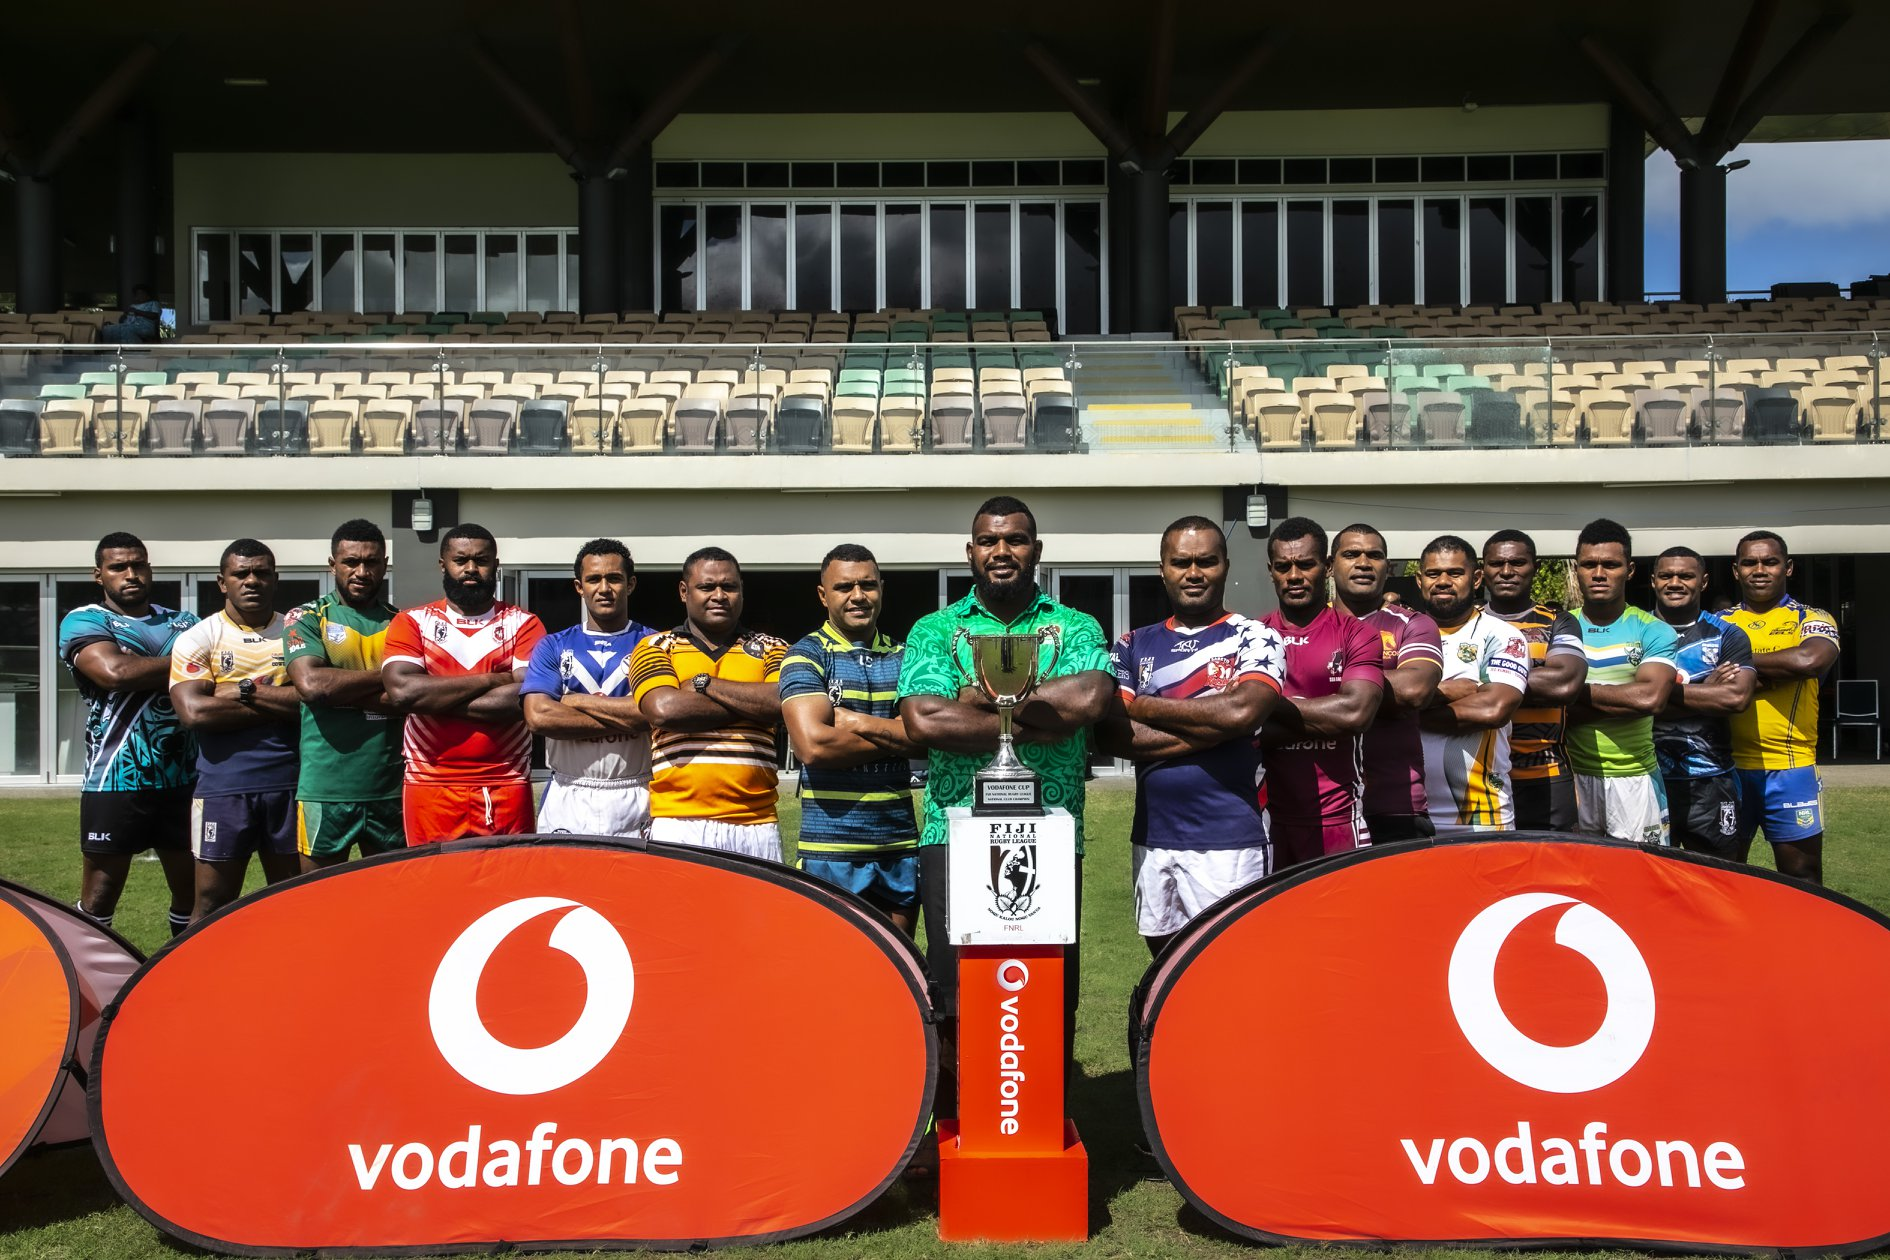 Fiji's Vodafone Cup set to expand in 2021